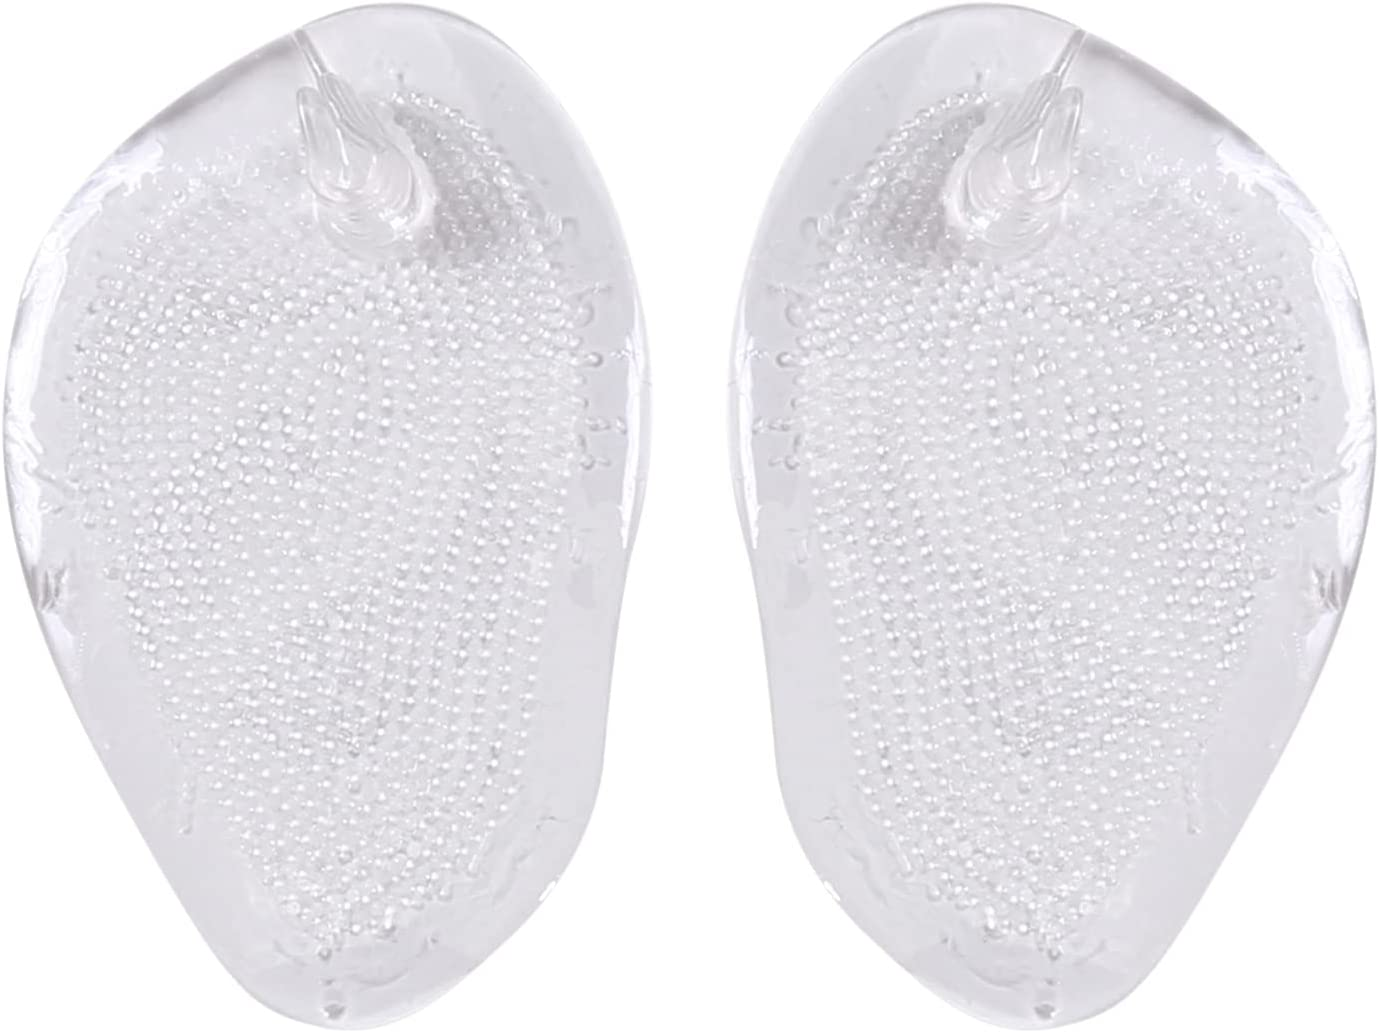 QXPDD 1 Sale Special Price Pair Gel Toe Post New color Pad Soft Silicone Cushion Shoe